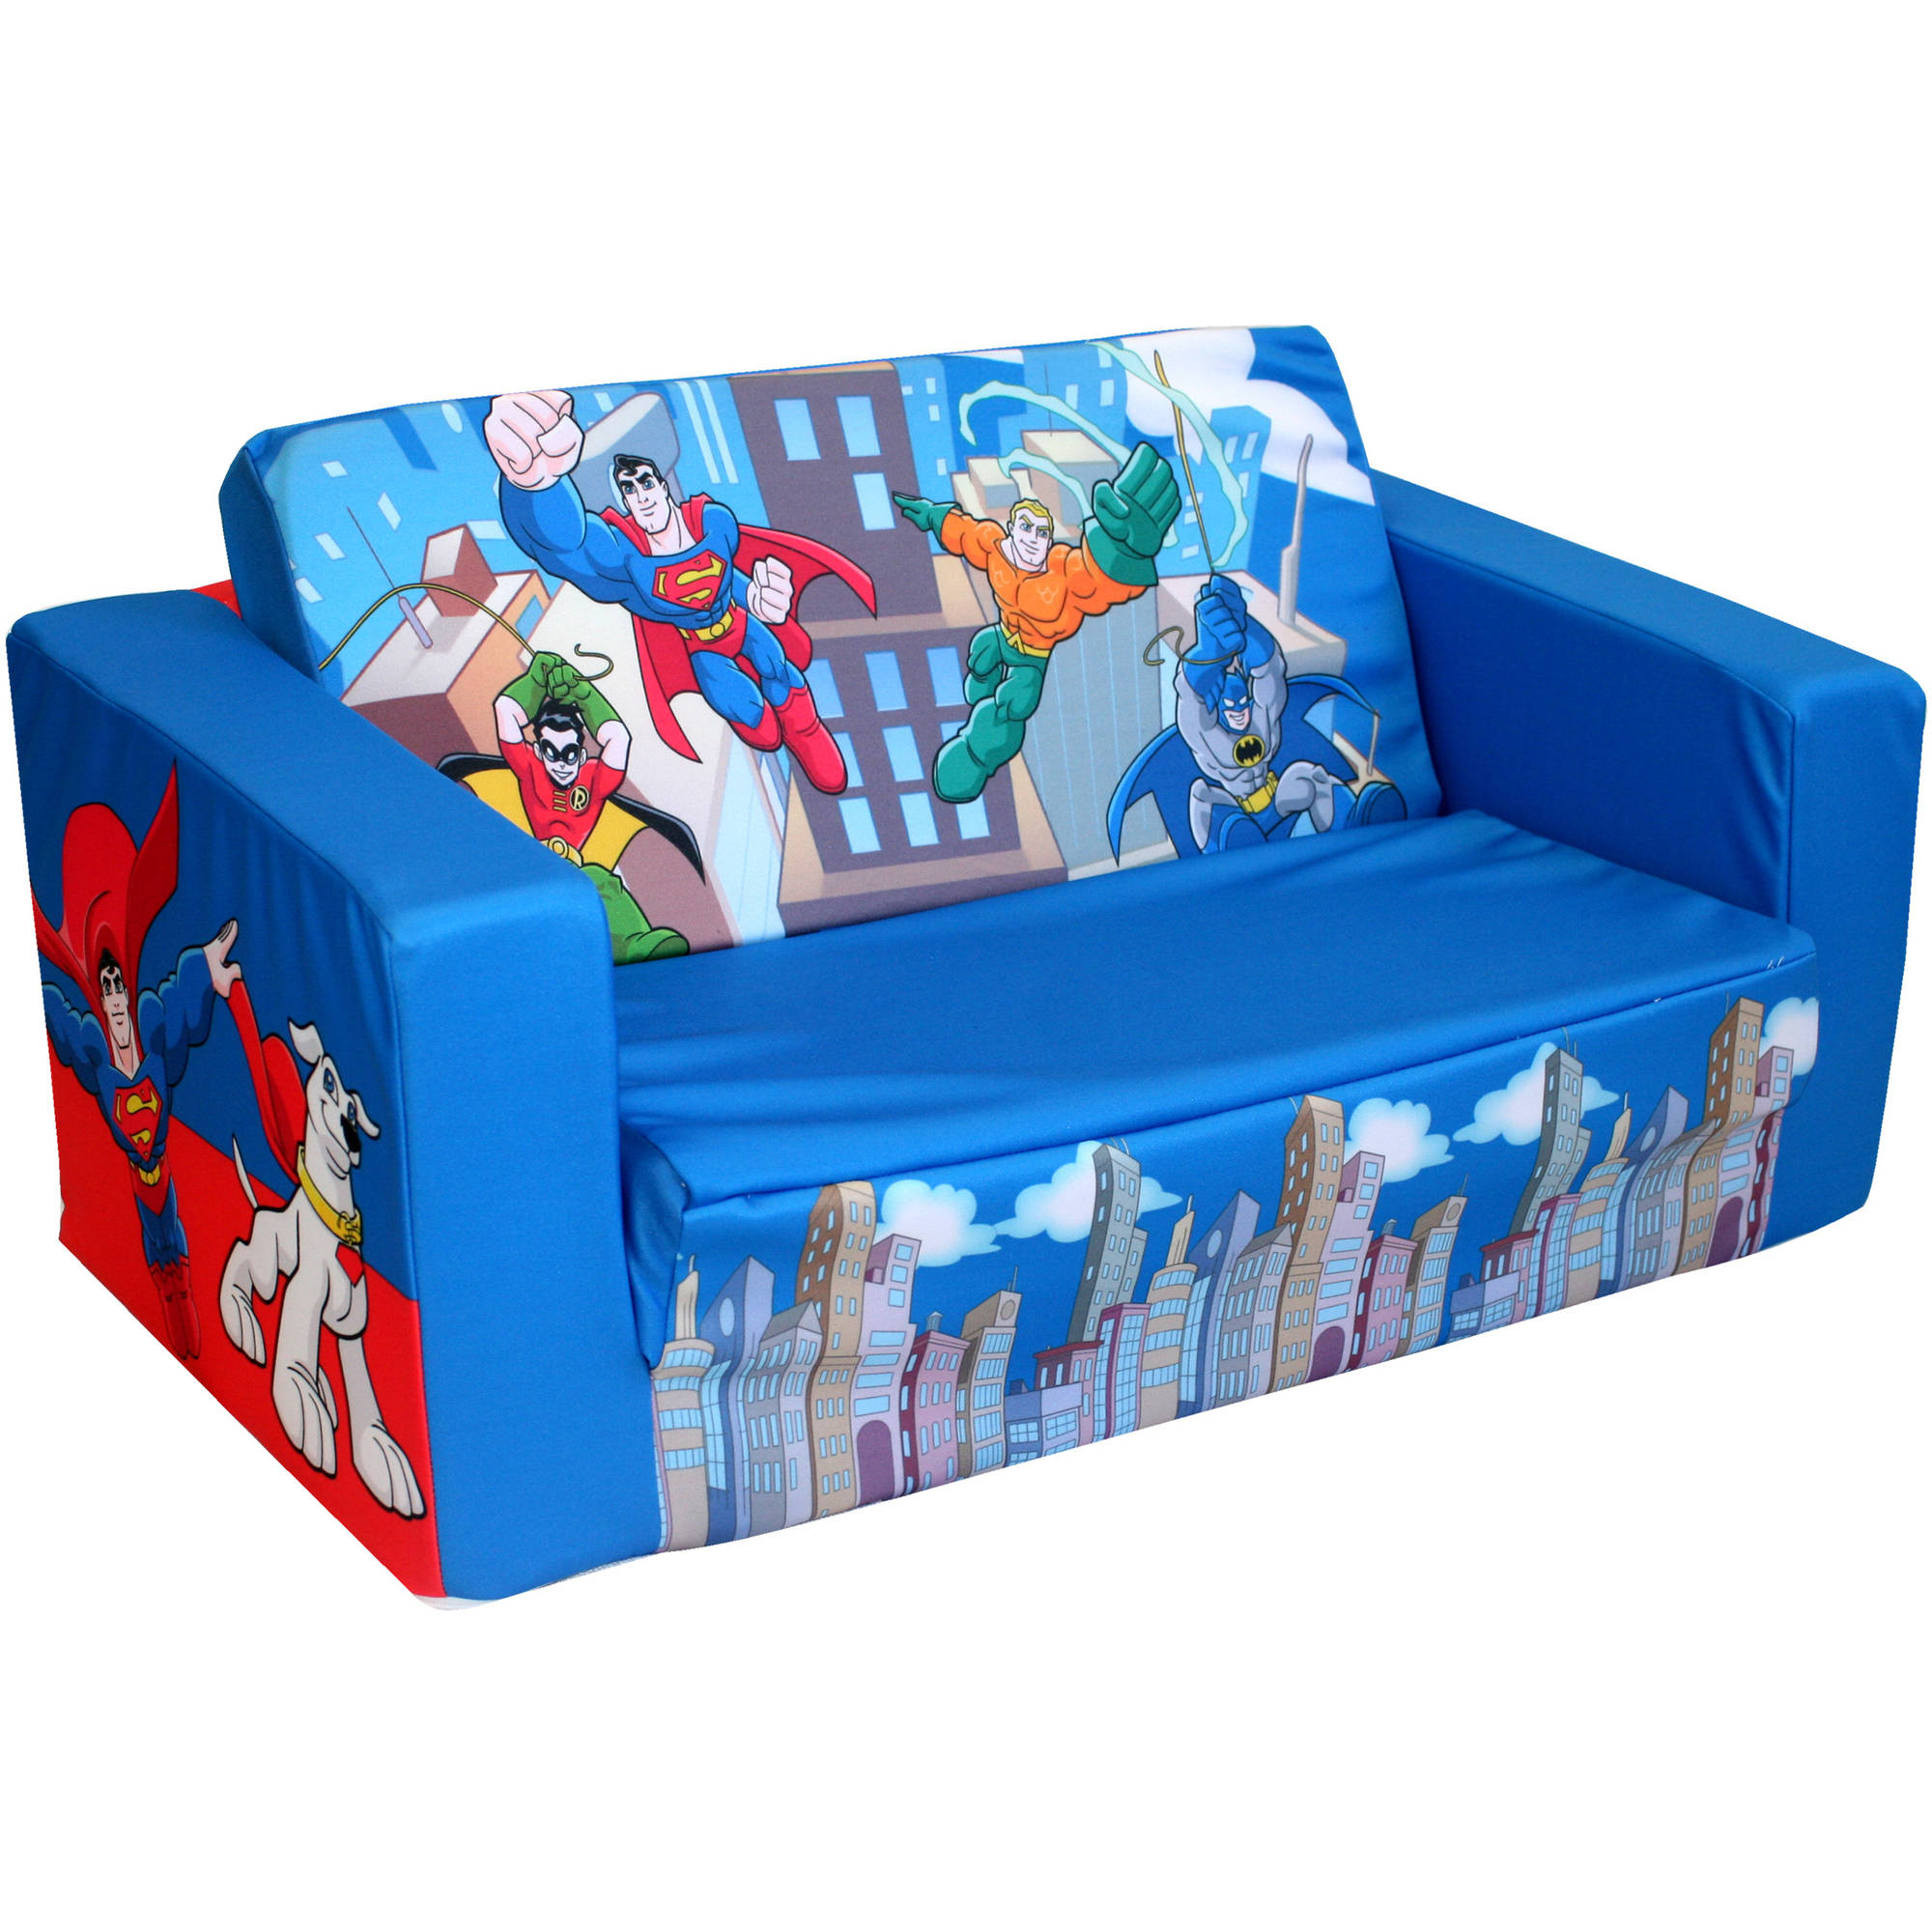 Flip Sofas Marshmallow Furniture Children S 2 In 1 Flip Open Foam Sofa Thesofa: toddler flip out sofa couch bed